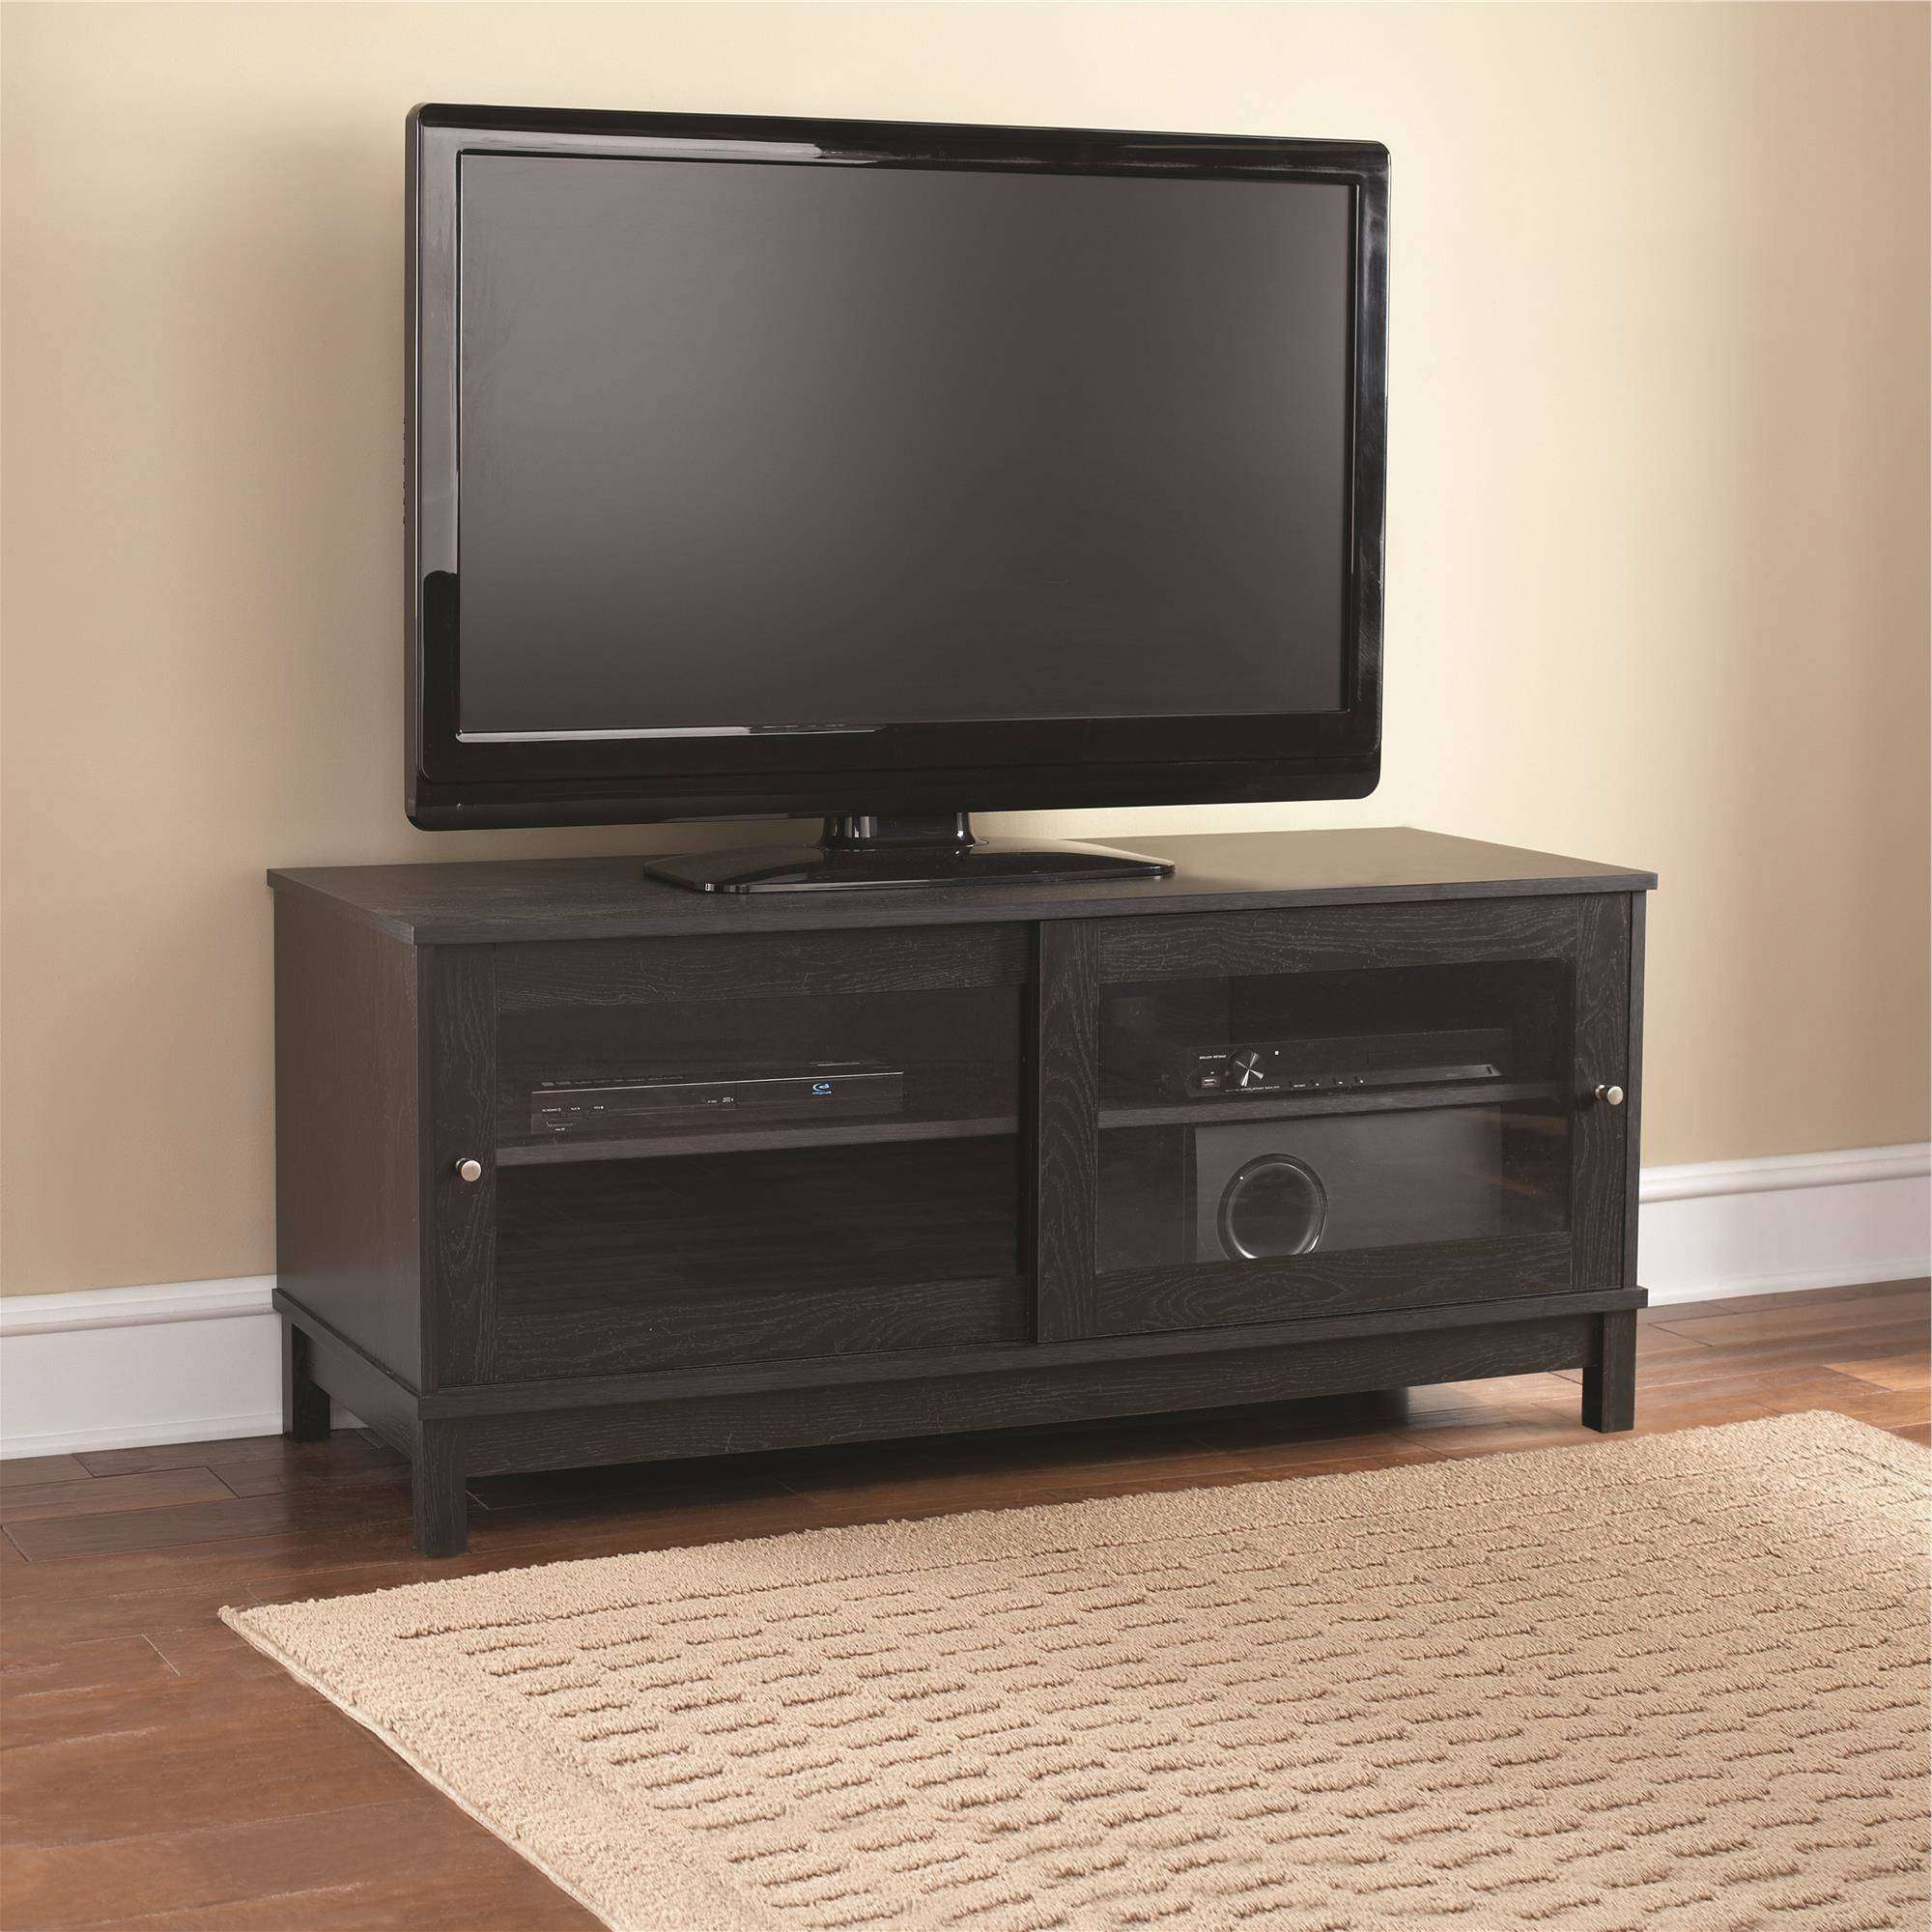 Wall Units: Costco Tv Stand Entertainment Center Furniturecostco With Wooden Tv Stands For 55 Inch Flat Screen (View 13 of 15)